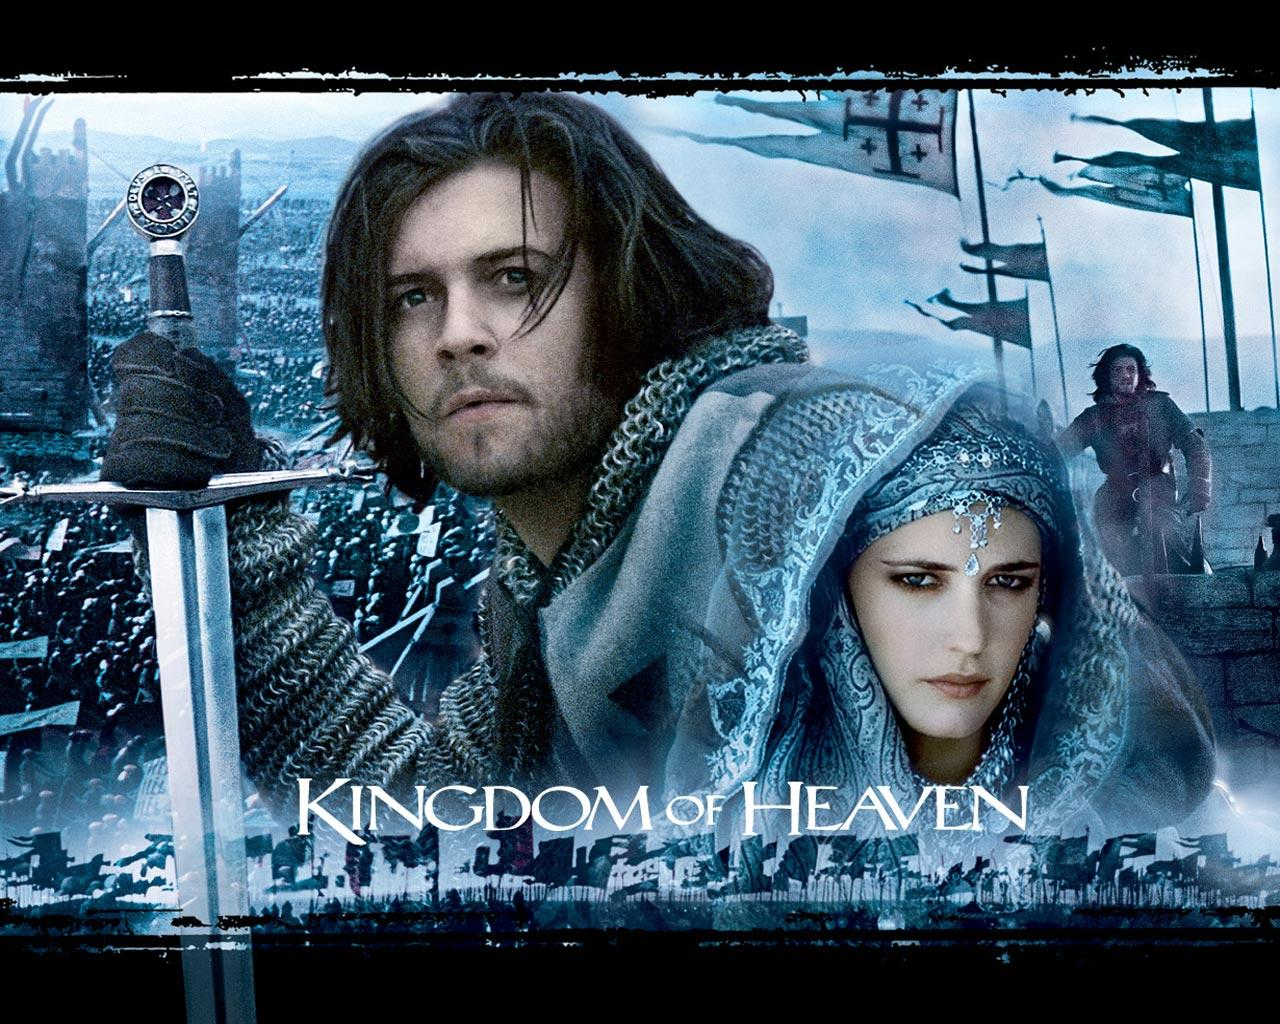 Kingdom Of Heaven Wallpaper #1 1280 x 1024